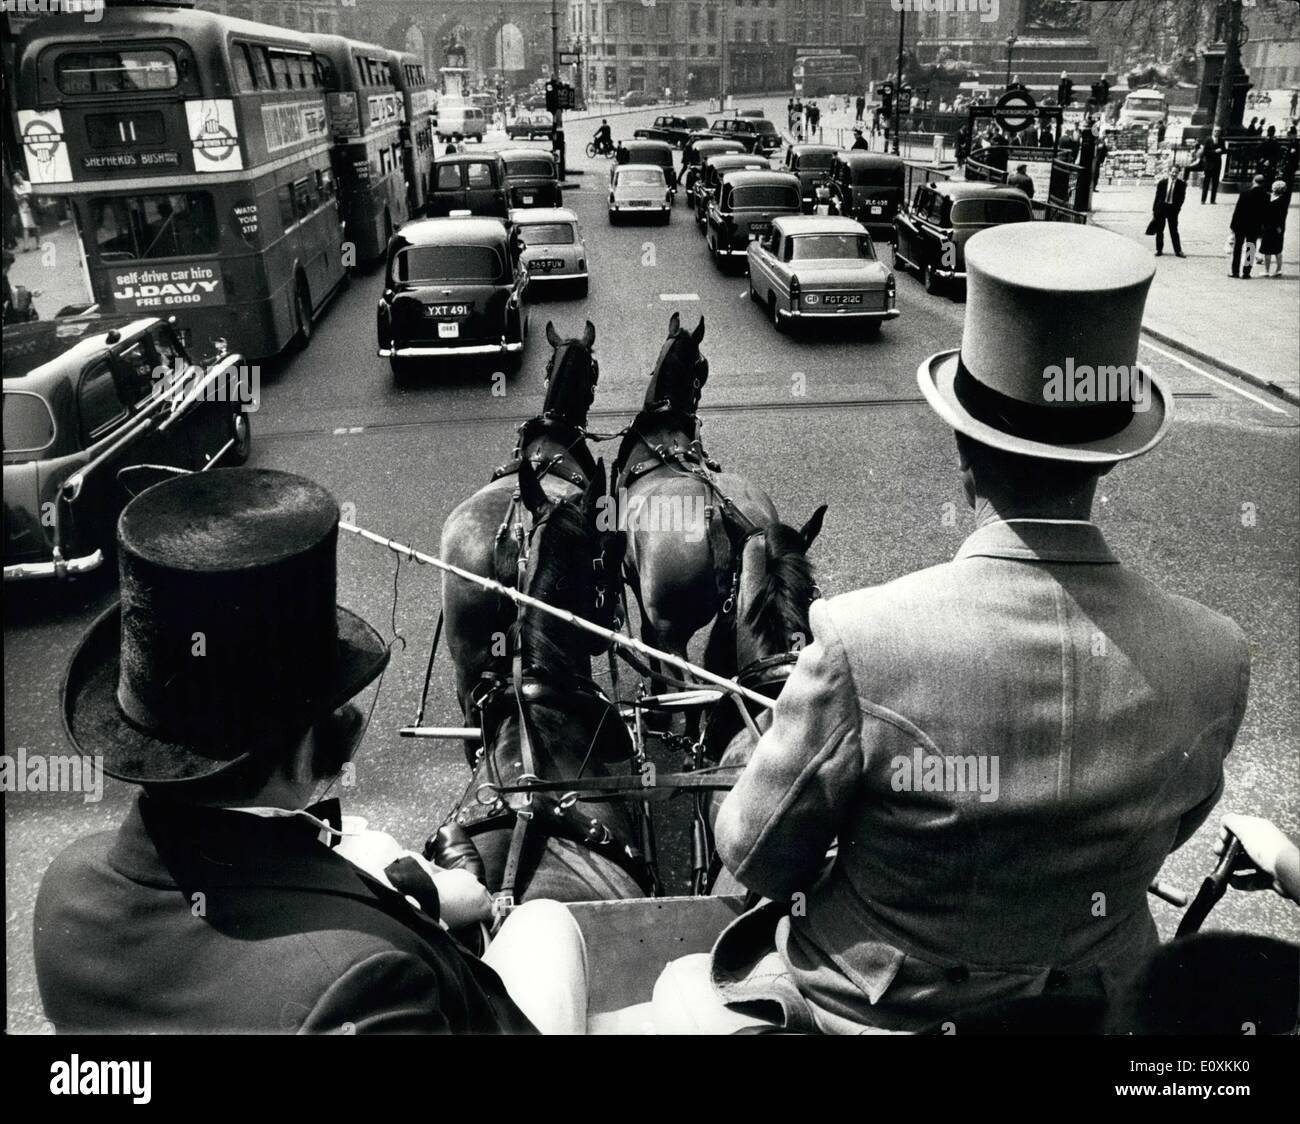 May 05, 1967 - Illustrated London news celebrates 125th. Anniversary.: The world's eldest illustrated weekly newspaper. the Illustrated London News, celebrates its 125th. anniversary today, And to celebrates they reted the first deliveries of the paper along Fleet Street and central London, as they were made by horse-drawn stage-coach in 1842. The original printing office stood in Grane Court. The publishing office was at 320 Strand, the site of Bush House. Afterwards, he coach, carrying Illustrated London News staff in period costume toured central London - Stock Image